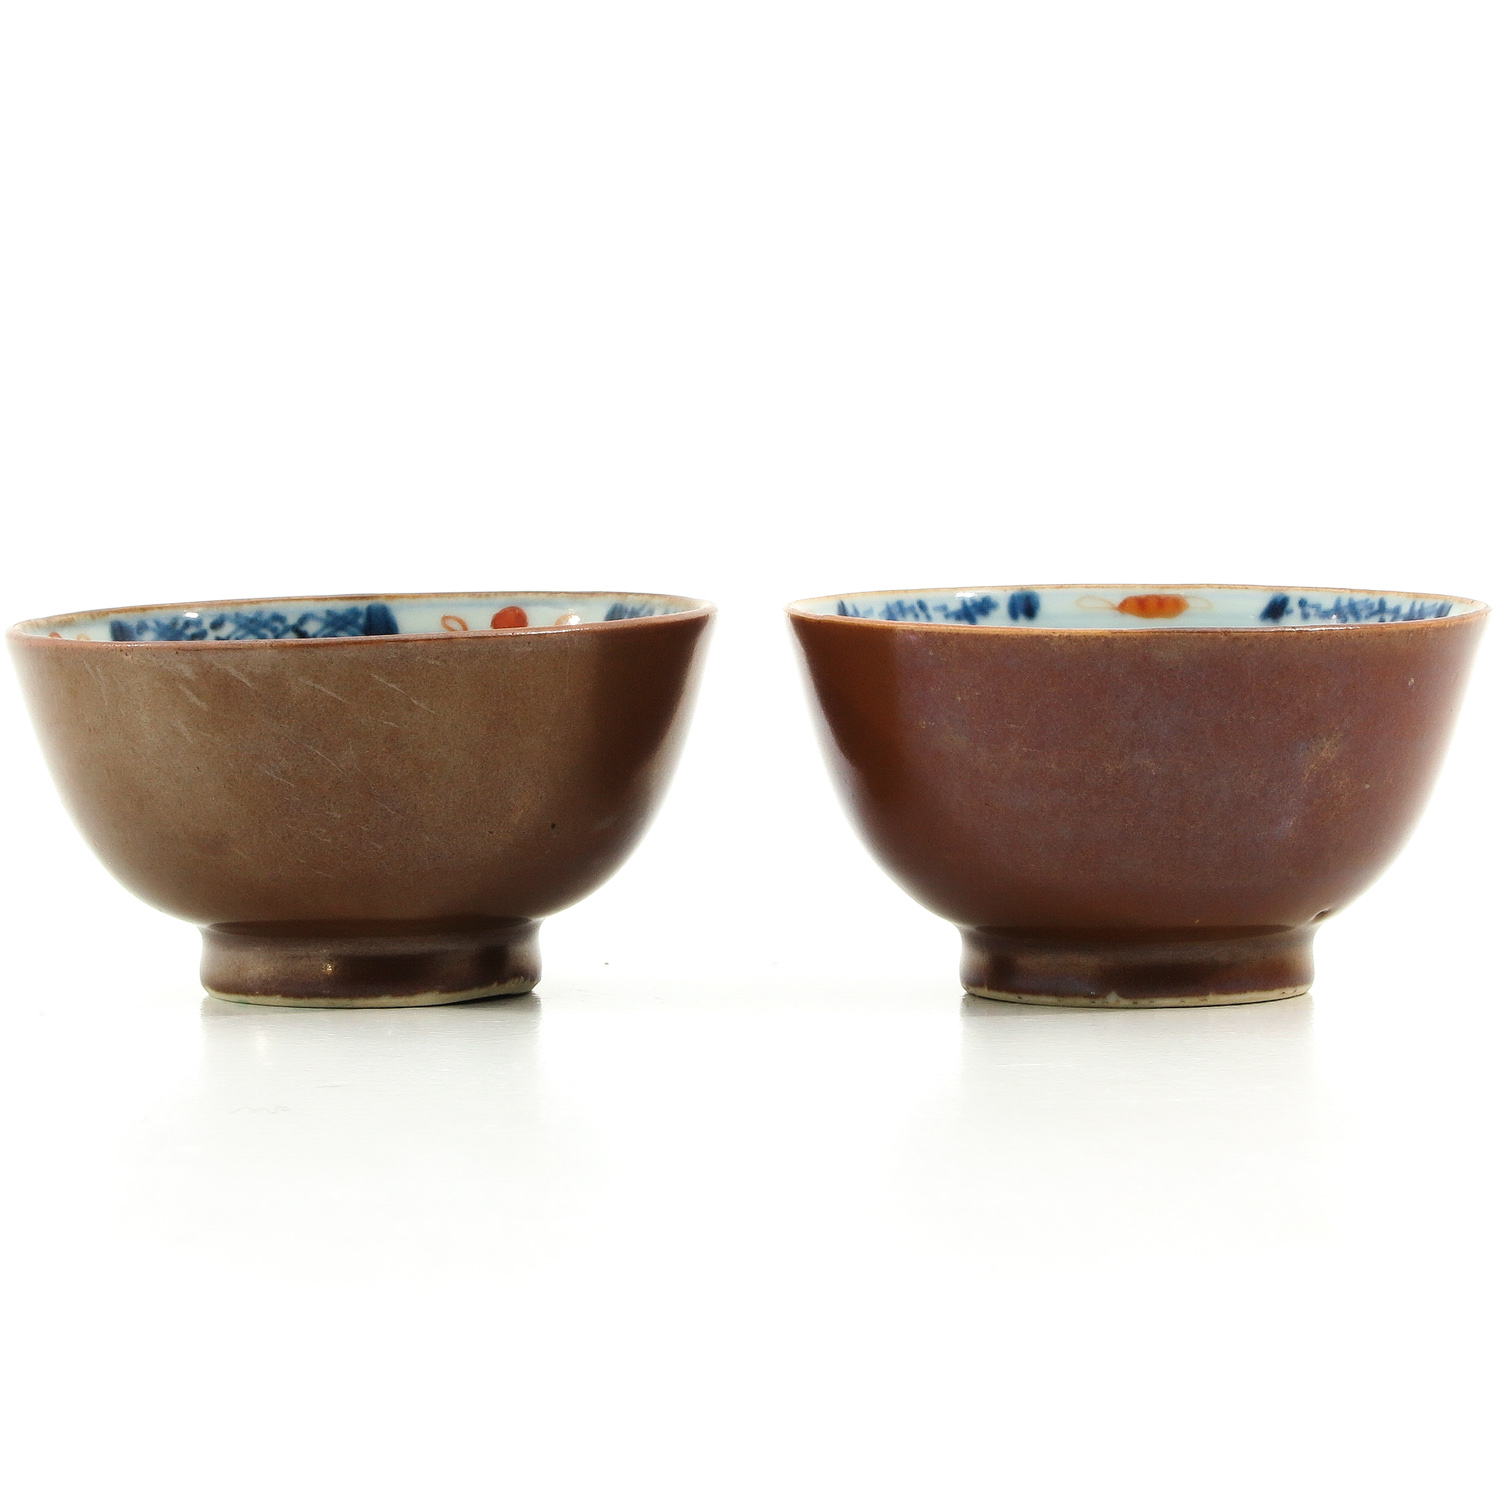 A Pair of Batavianware Cups and Saucers - Image 5 of 9